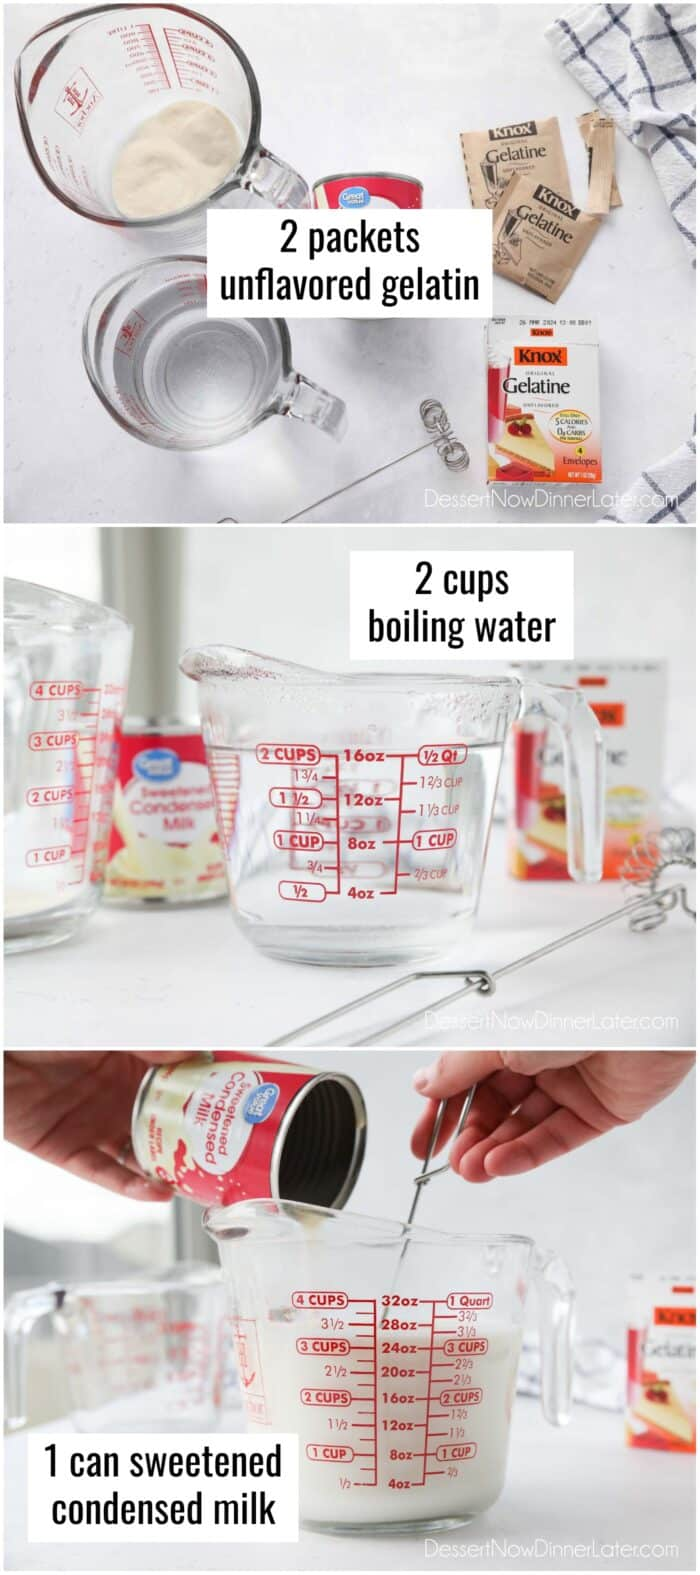 White Layer: Mix 2 packets of unflavored gelatin with 2 cups of boiling water and 1 can of sweetened condensed milk.